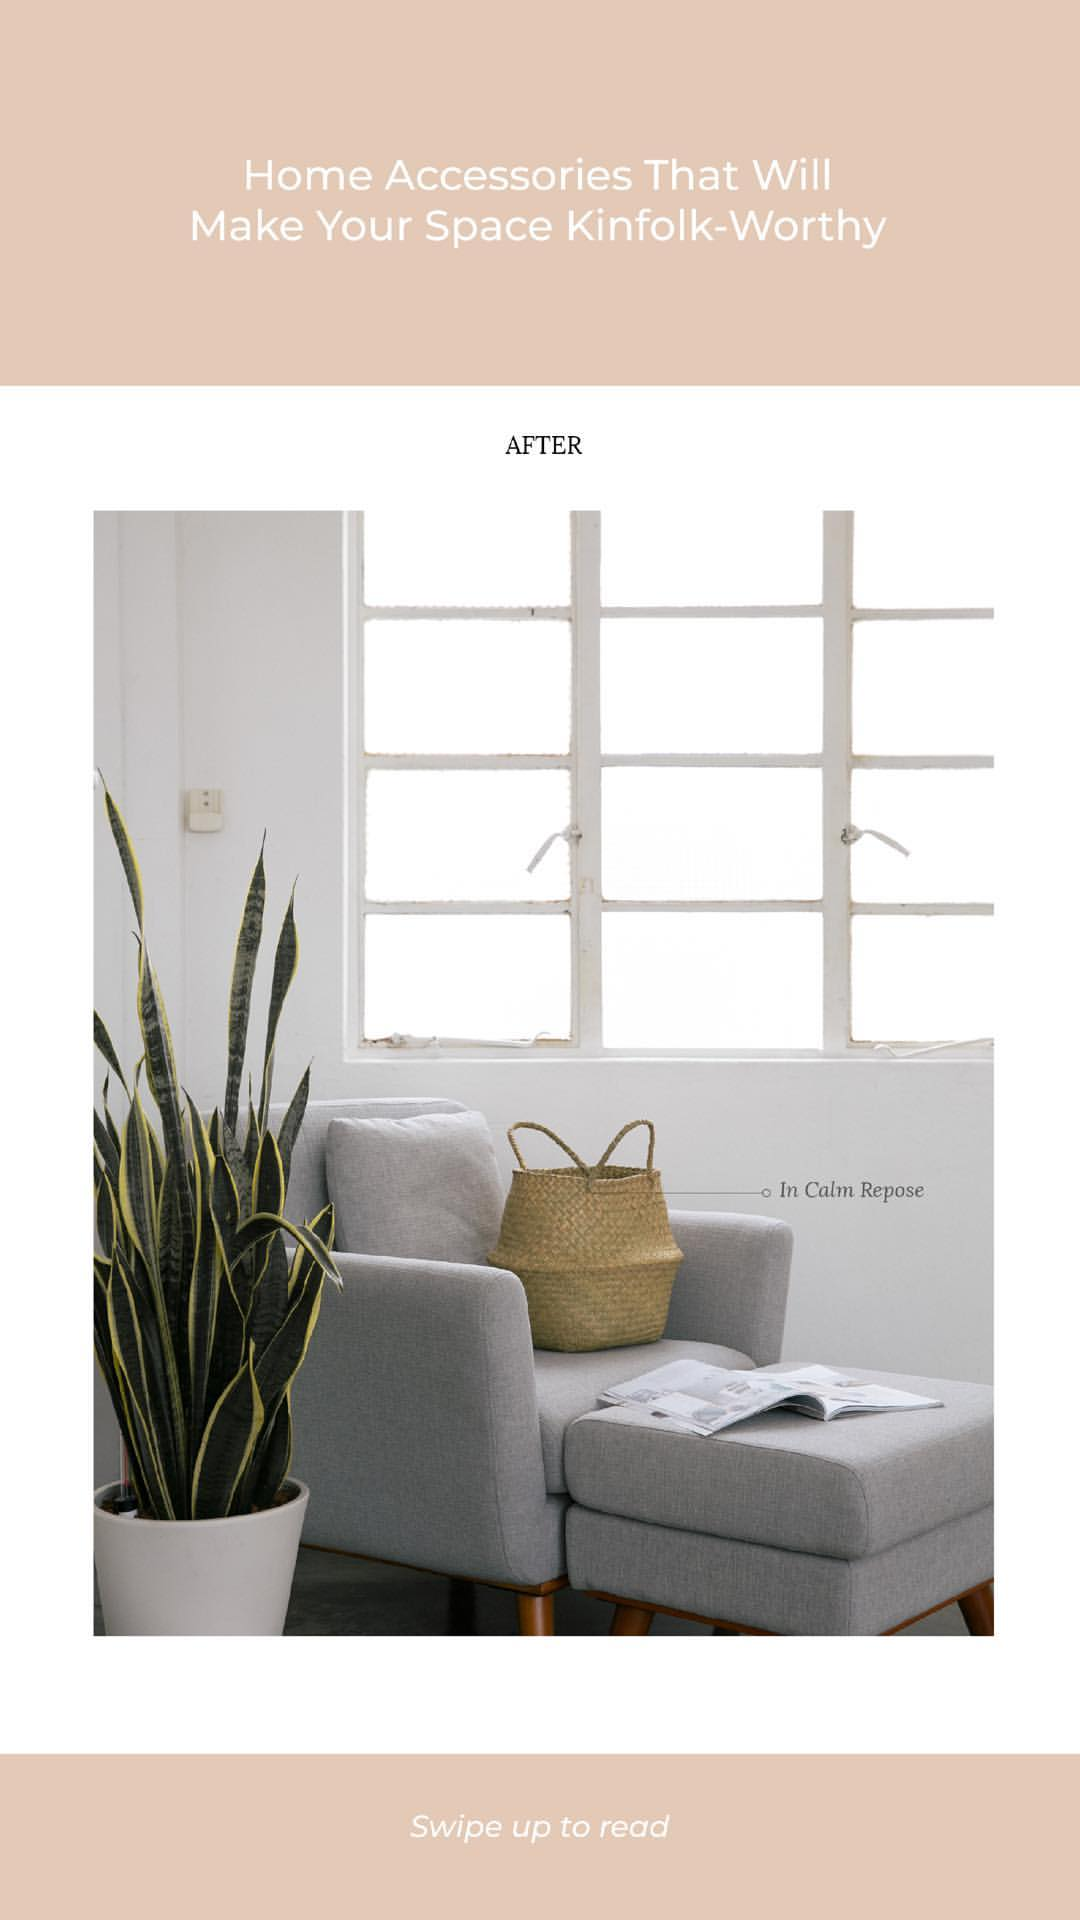 Dreachong_Instagram Story_07May18_Photo Post 4_1 Webpage_Home Accessories That Will Make Your Space Kinfolk-Worthy.jpg